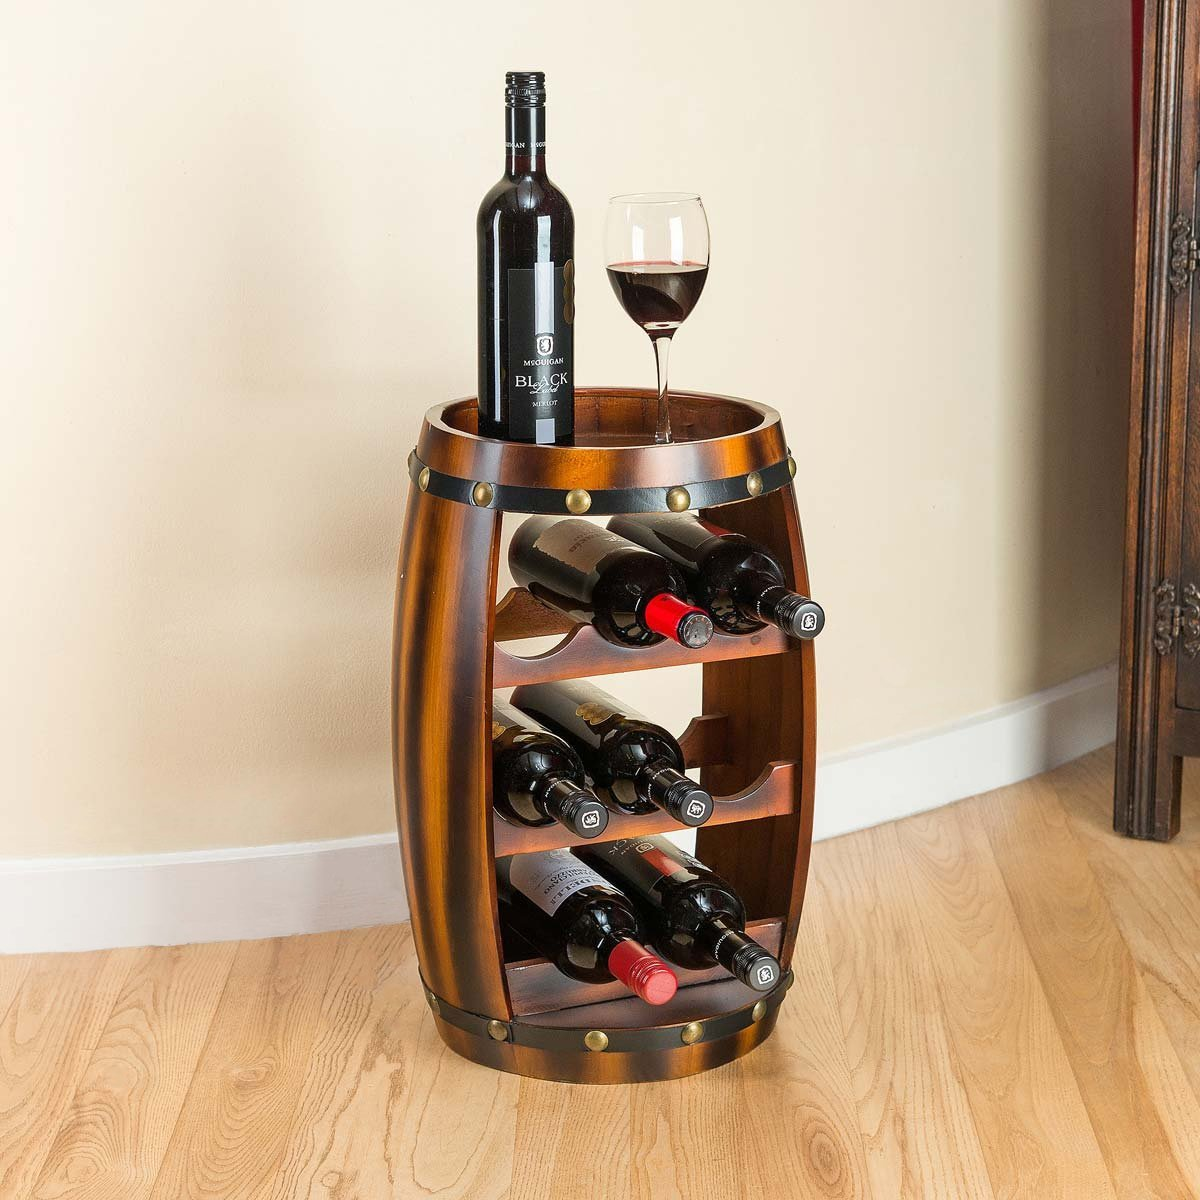 Weird And Wonderful Wine Racks  Vinspire. Best Rated Living Room Furniture. Tranquil Living Room. Turquoise Themed Living Room. Black Living Room Set. Ihop Kc Prayer Room Live. Double Chaise Lounge Living Room. Square Side Tables Living Room. Clock In Living Room